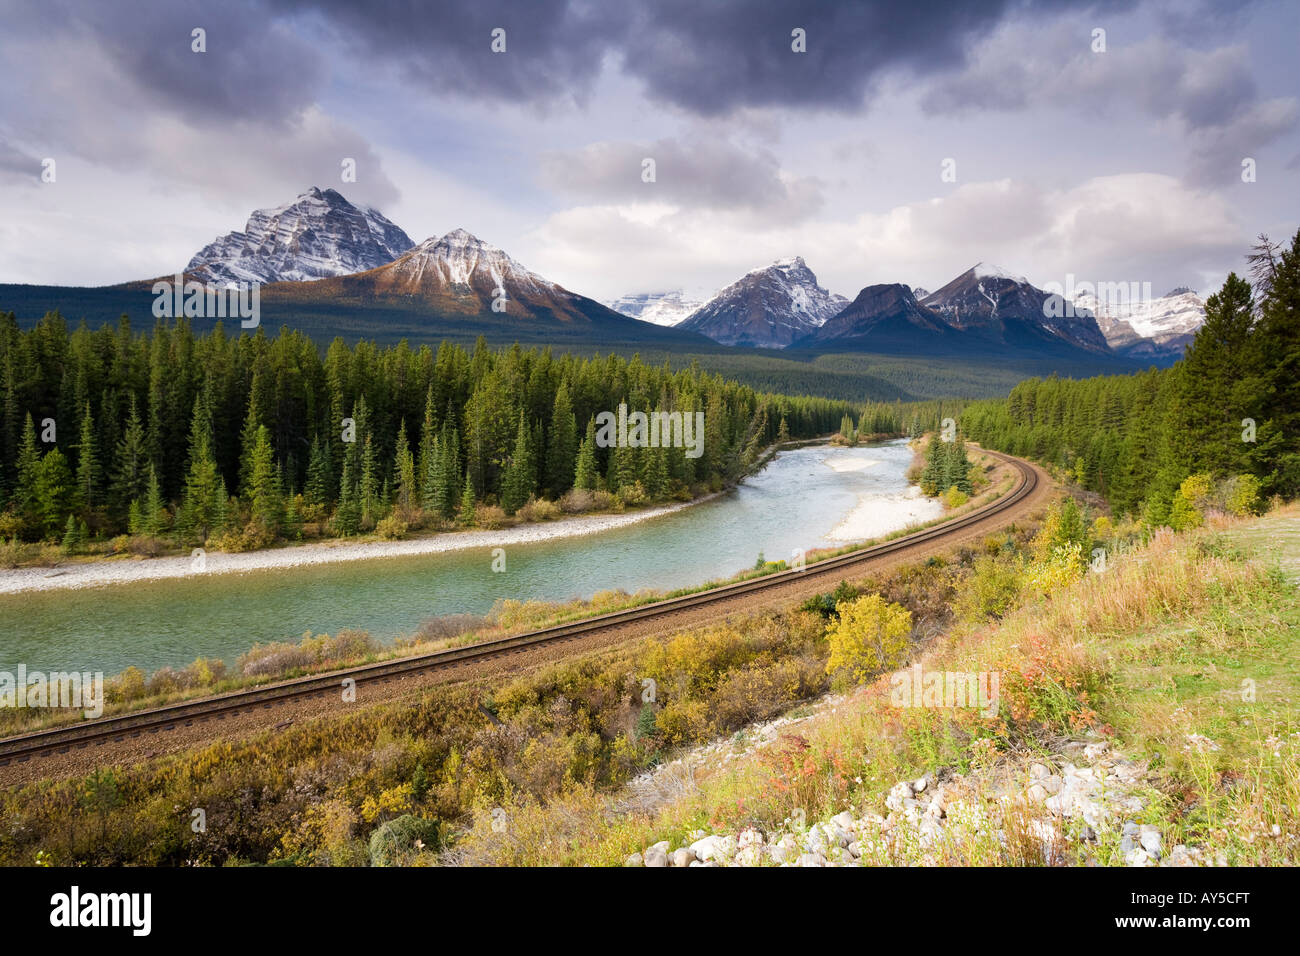 View of the Rocky mountains from Morant s Curve on the CPR line along the Bow River near Lake Louise in Banff National - Stock Image